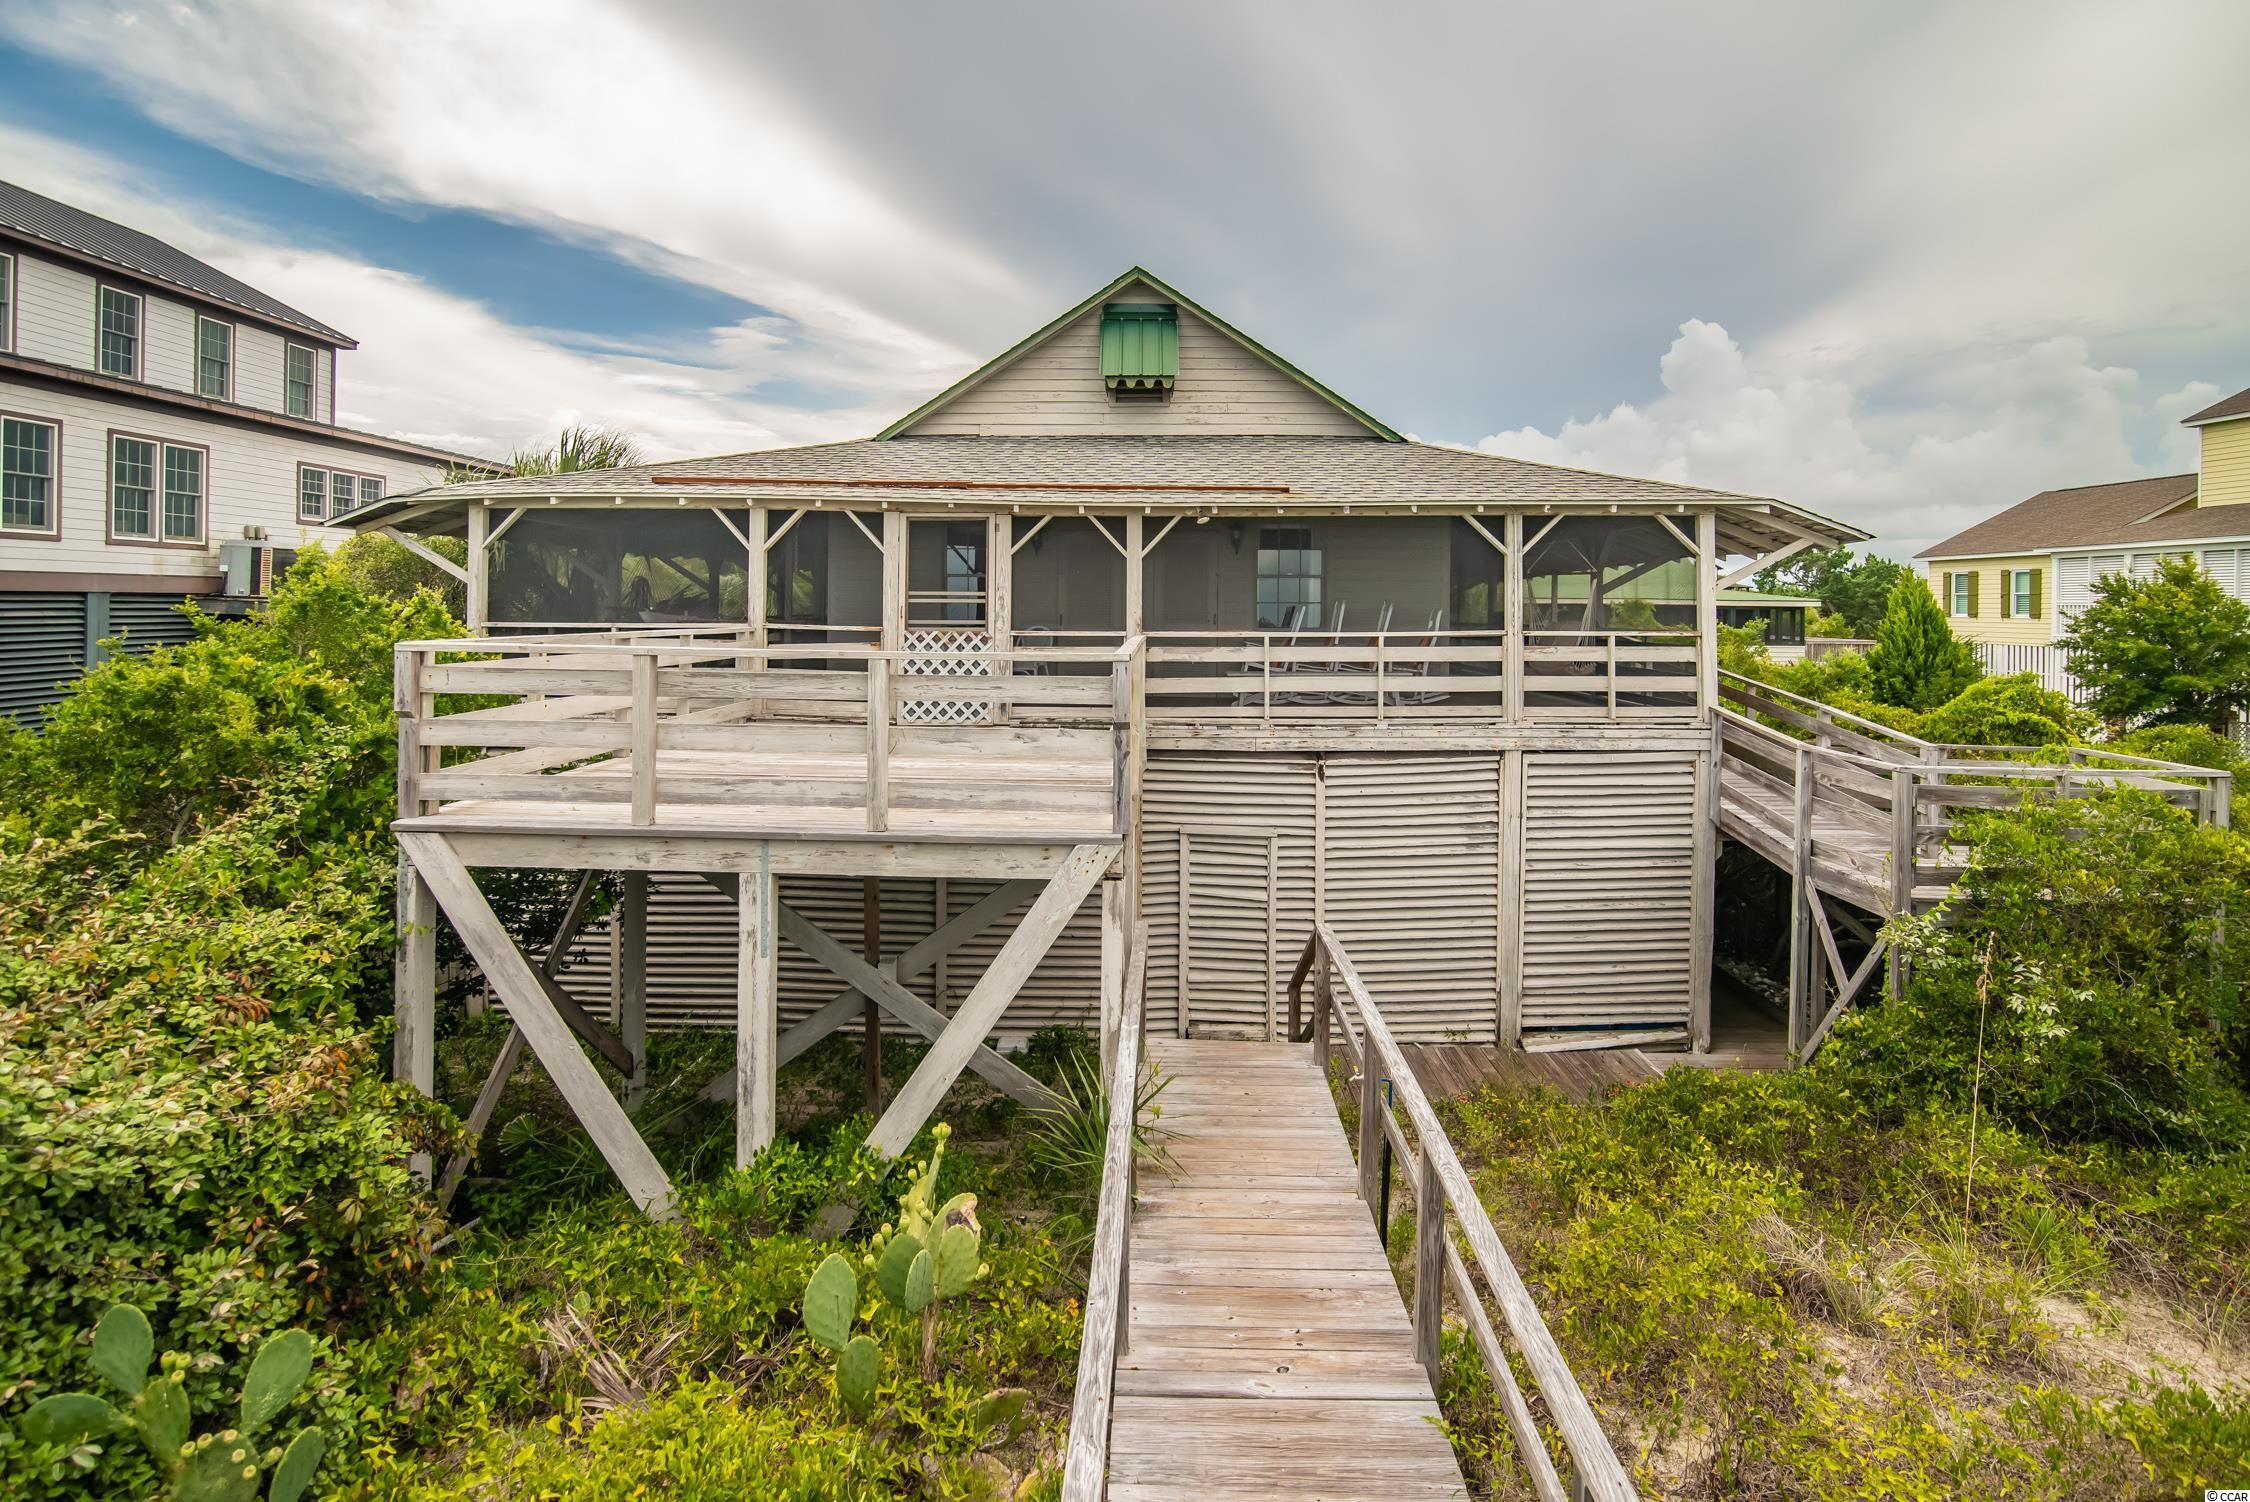 """Welcome to 164 Atlantic Avenue, your """"arrogantly shabby"""" Pawleys Island Beach house.  Situated on one of the largest (wide and deep) lots on Pawleys Island, this house has plenty of privacy and a spacious yard!  Enjoy rocking on the porch or swinging in your hammock while feeling the ocean breeze and watching the ocean waves crash on the shore.  Originally built in the 1930s, this charming Pawleys cottage has a legacy of cherished memories over the generations.  The house has 5 bedrooms and 3.5 bathrooms so there is plenty of room for guests or family!  Home is being sold in """"as-is"""" condition.  Pawleys Island is located just 70 miles for a historic day trip to Charleston, SC or 25 miles to the attractions of Myrtle Beach."""